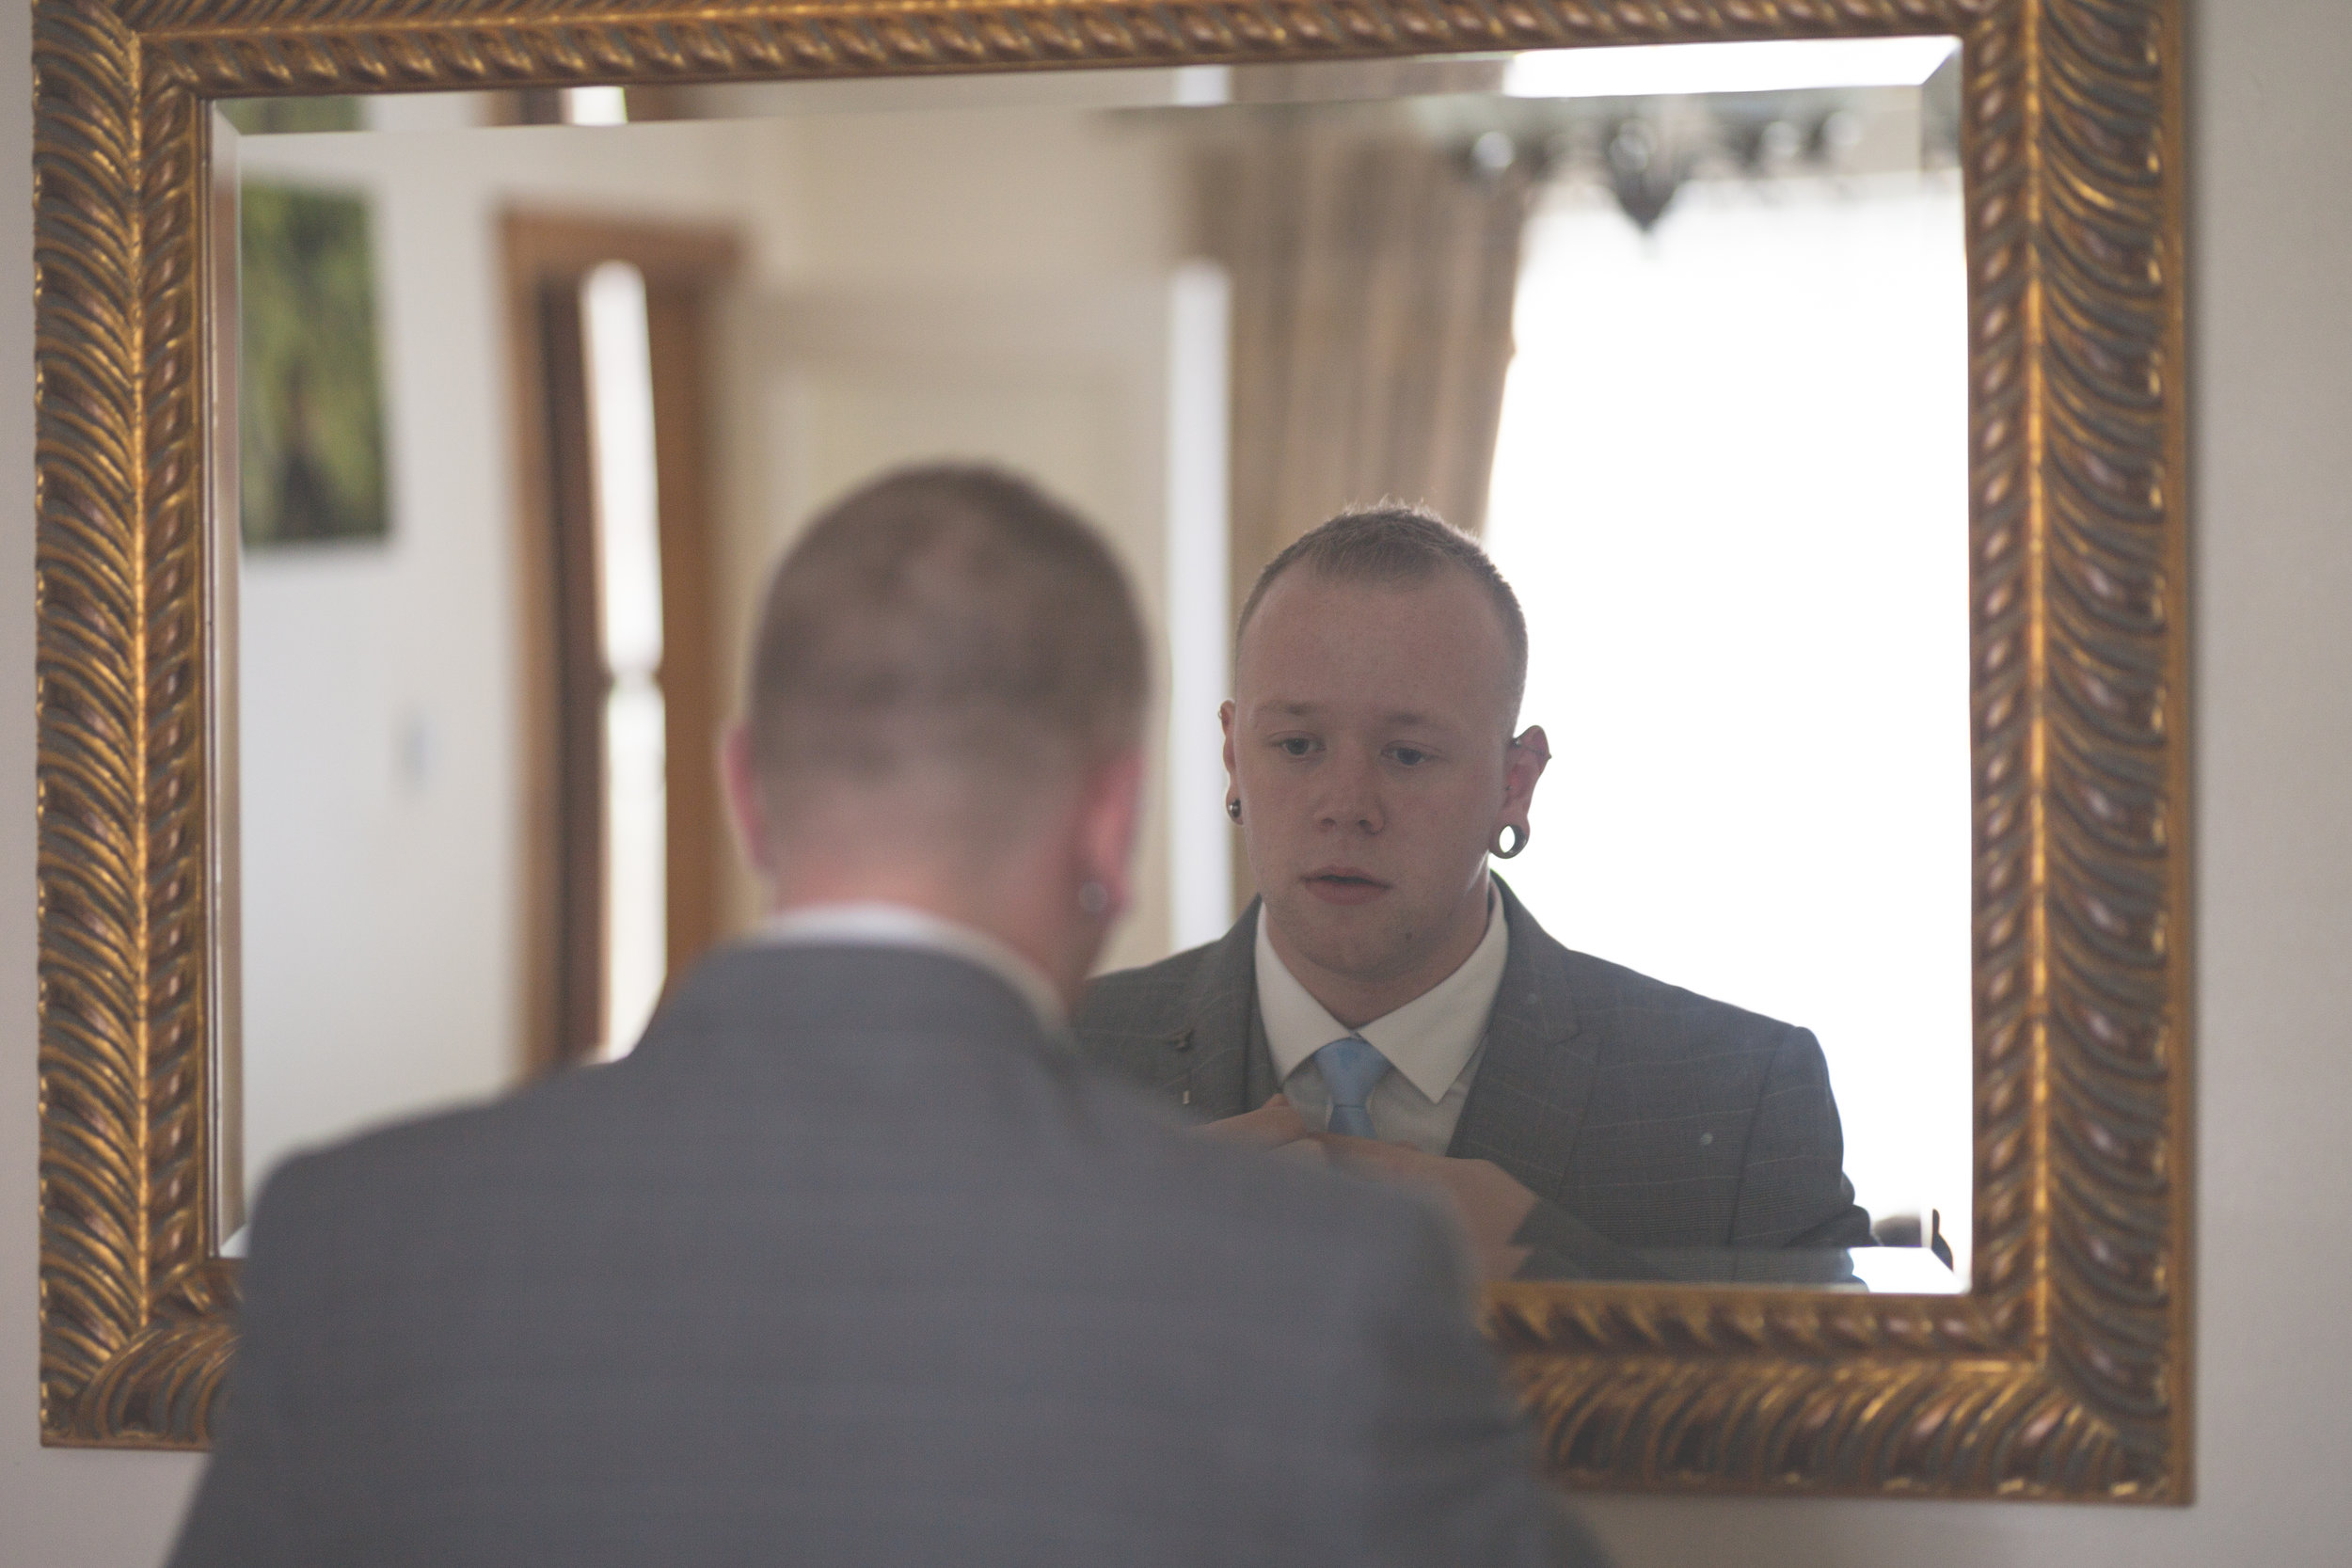 Antoinette & Stephen - Groom & Groomsmen | Brian McEwan Photography | Wedding Photographer Northern Ireland 11.jpg